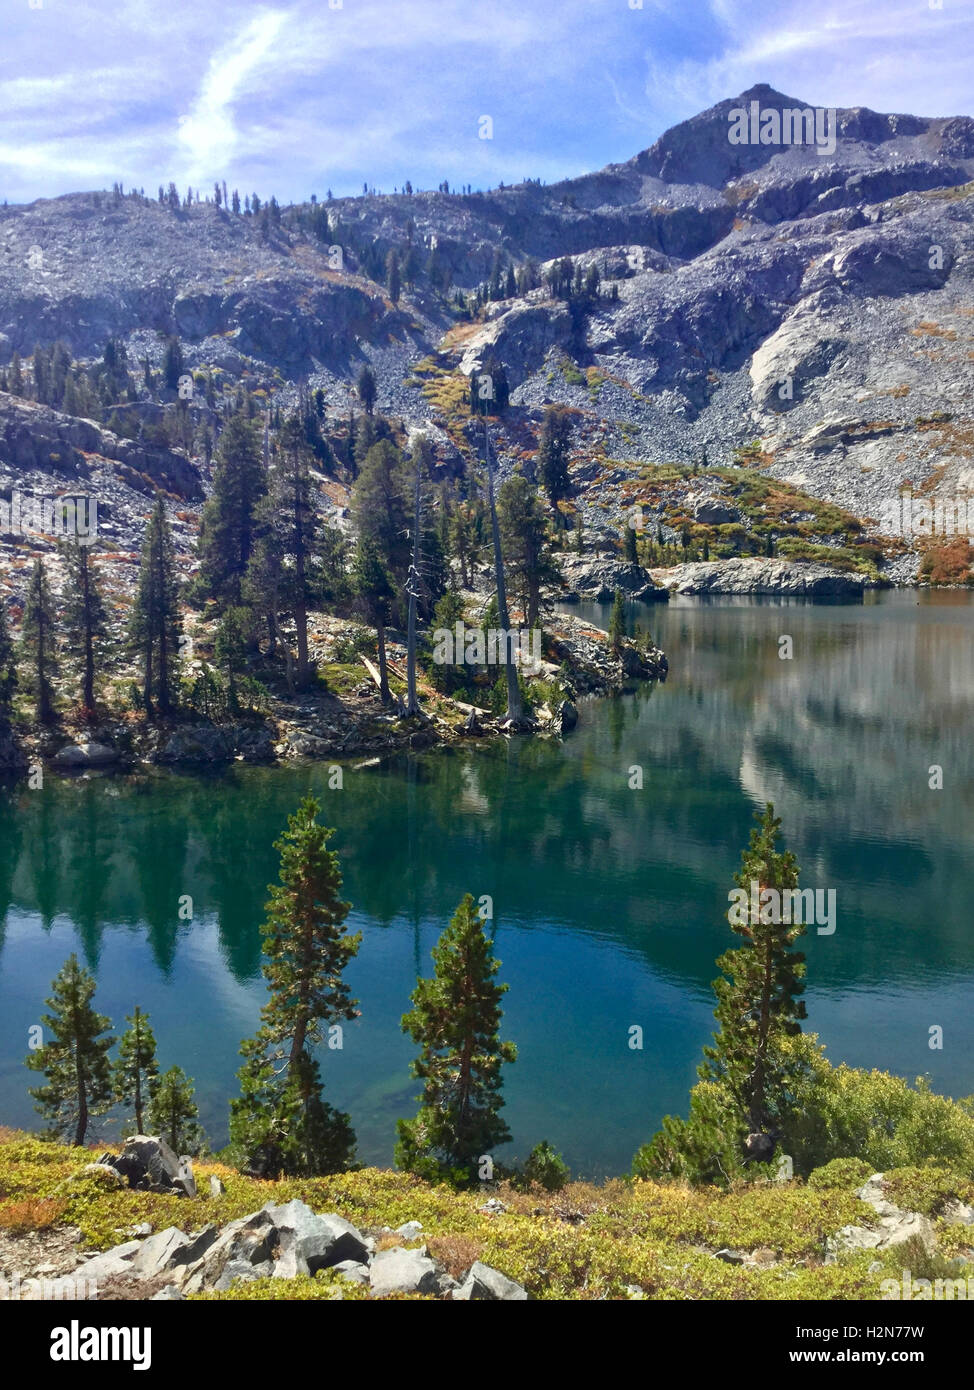 Trees reflecting on a lake in Desolation Wilderness area near Echo Lake above Lake Tahoe, California - Stock Image